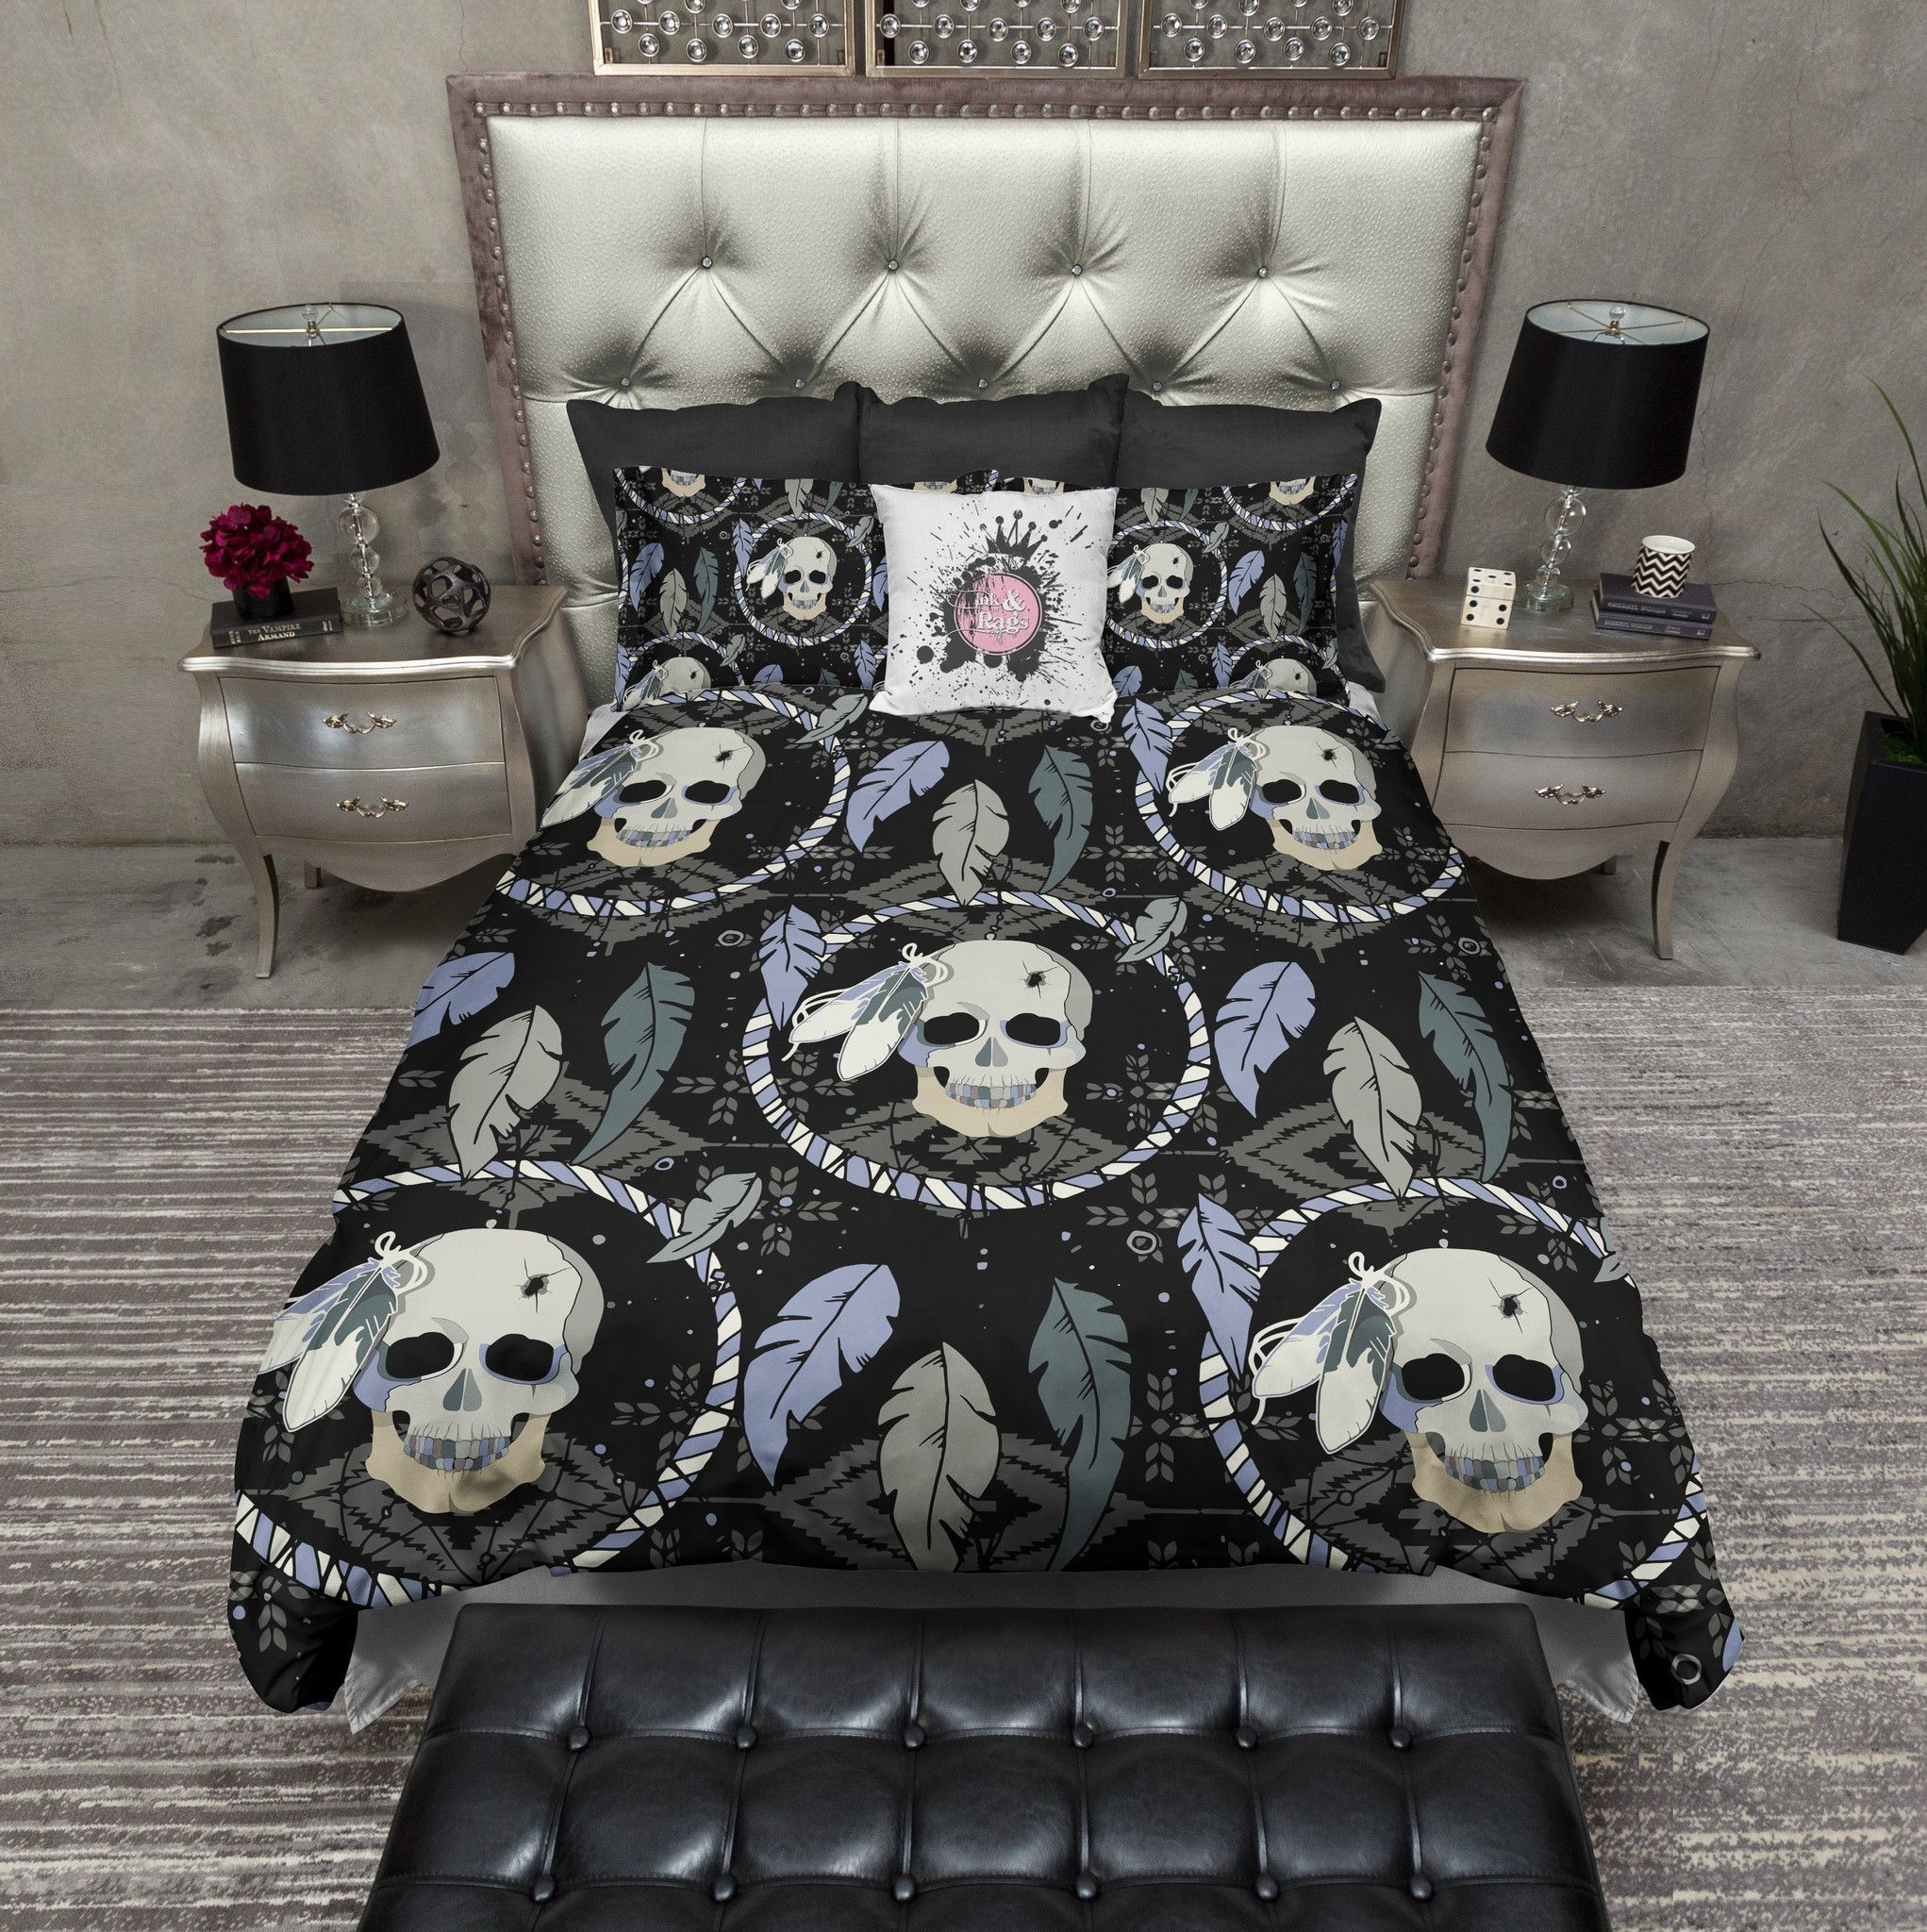 Dreamcatcher Feather Skull Bedding Cream Duvet Bedding Sets Bed